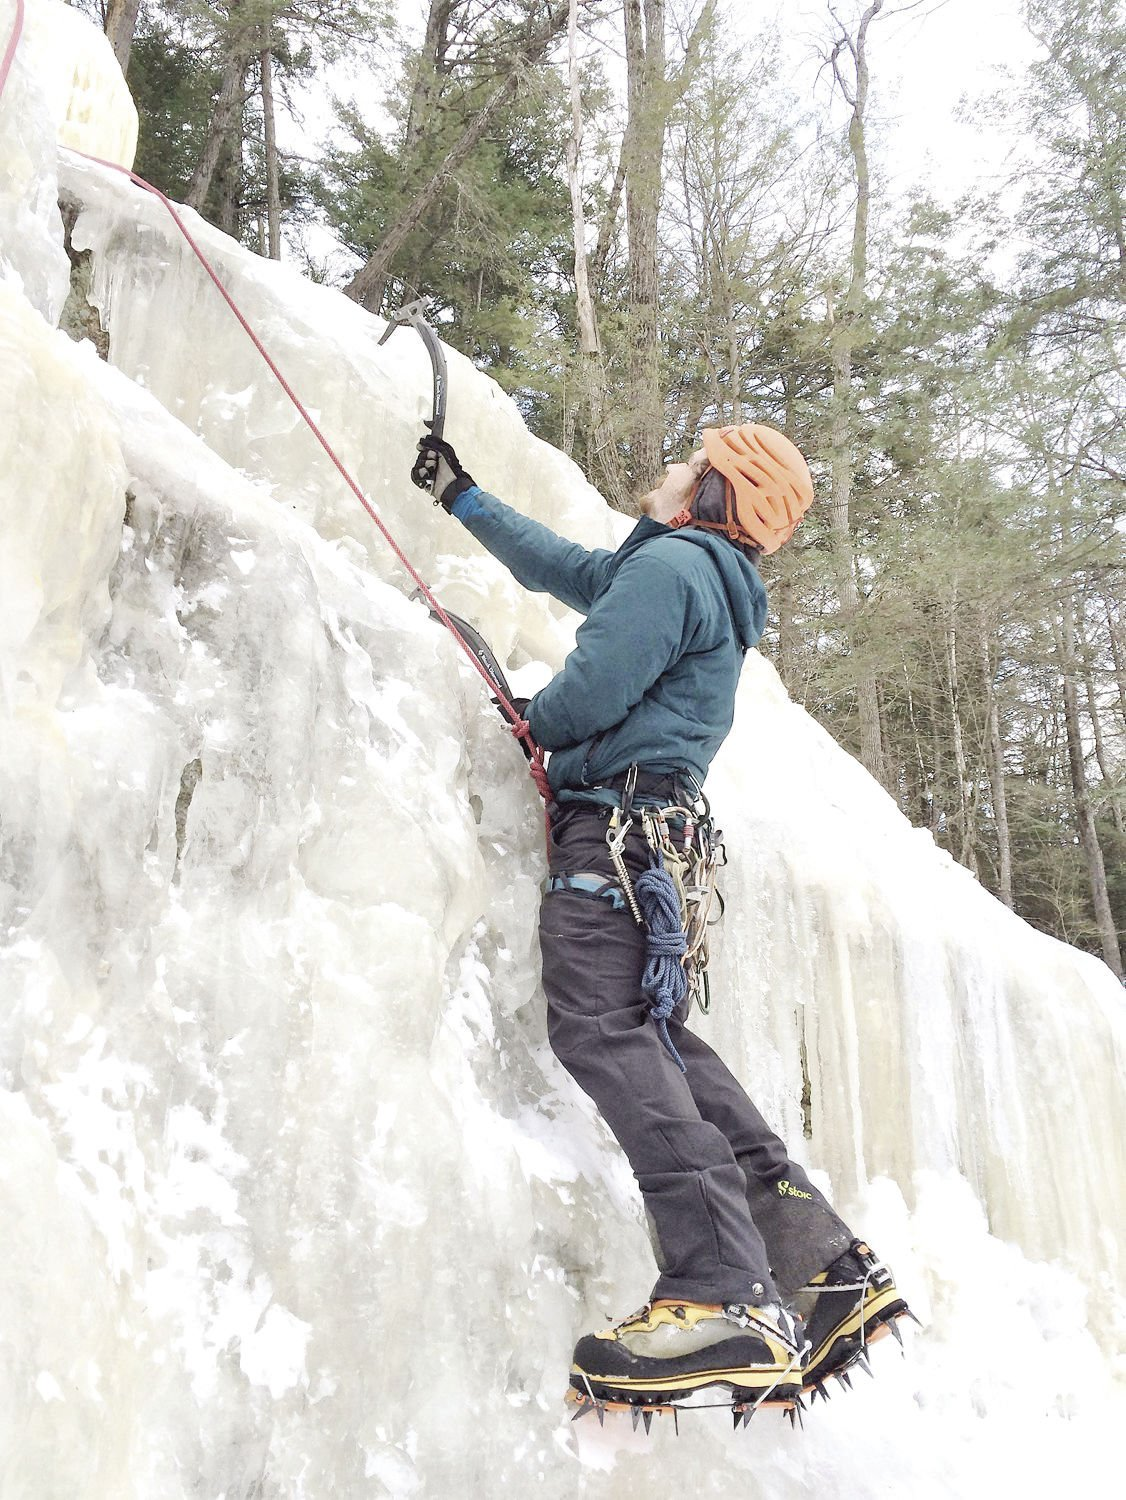 Winter Notes: Learning the ropes (and picks and crampons) of ice climbing in the Mount Washington Valley